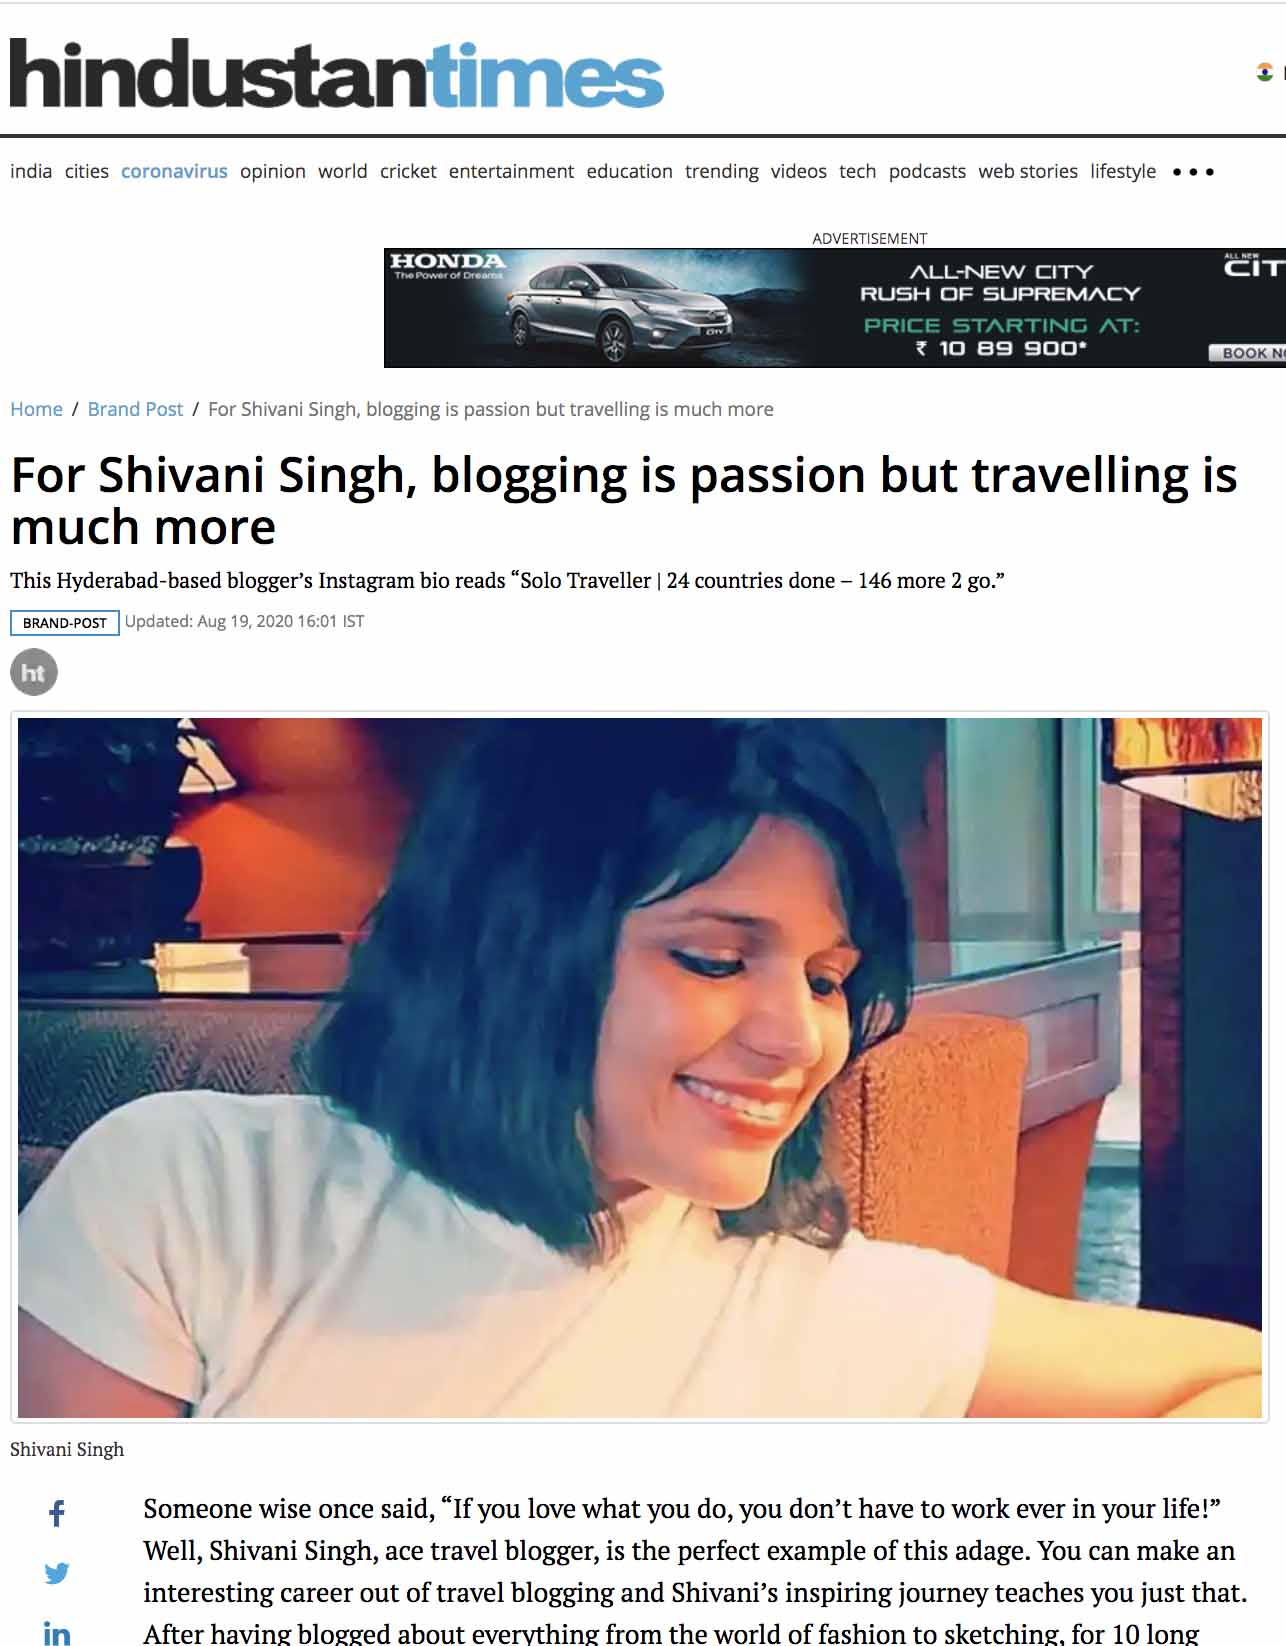 SHIVANI SINGH TRAVEL BLOGGER